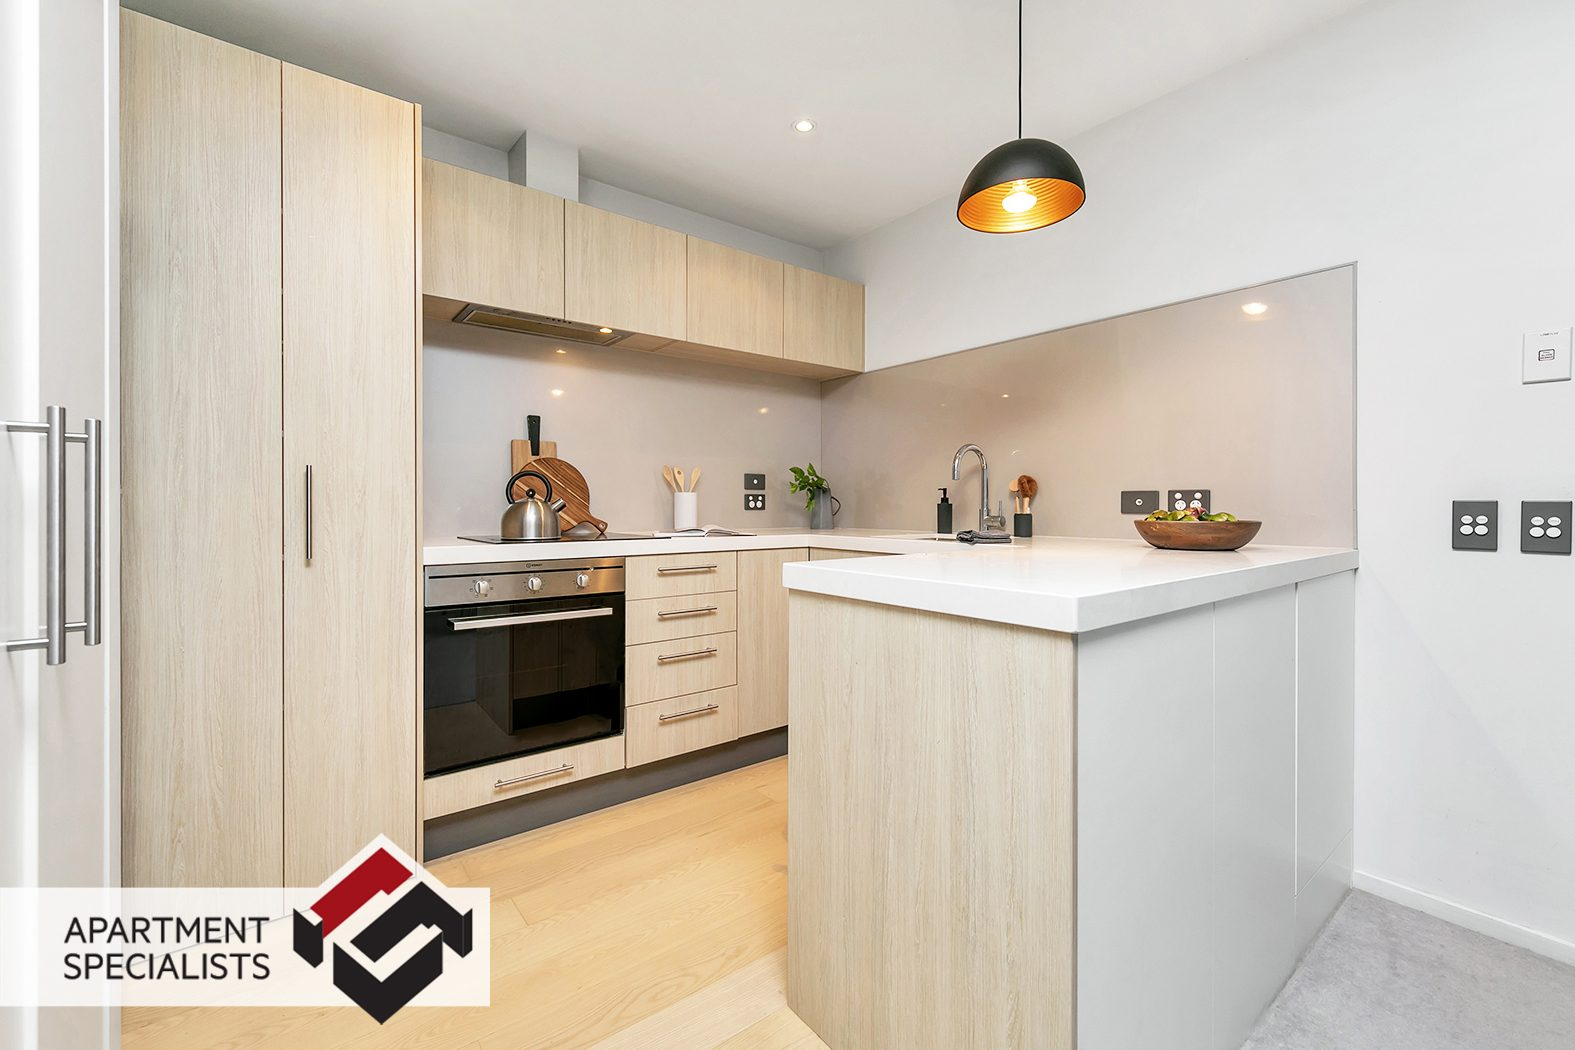 Interior Lighting Staged Apartment | Apartment Specialists